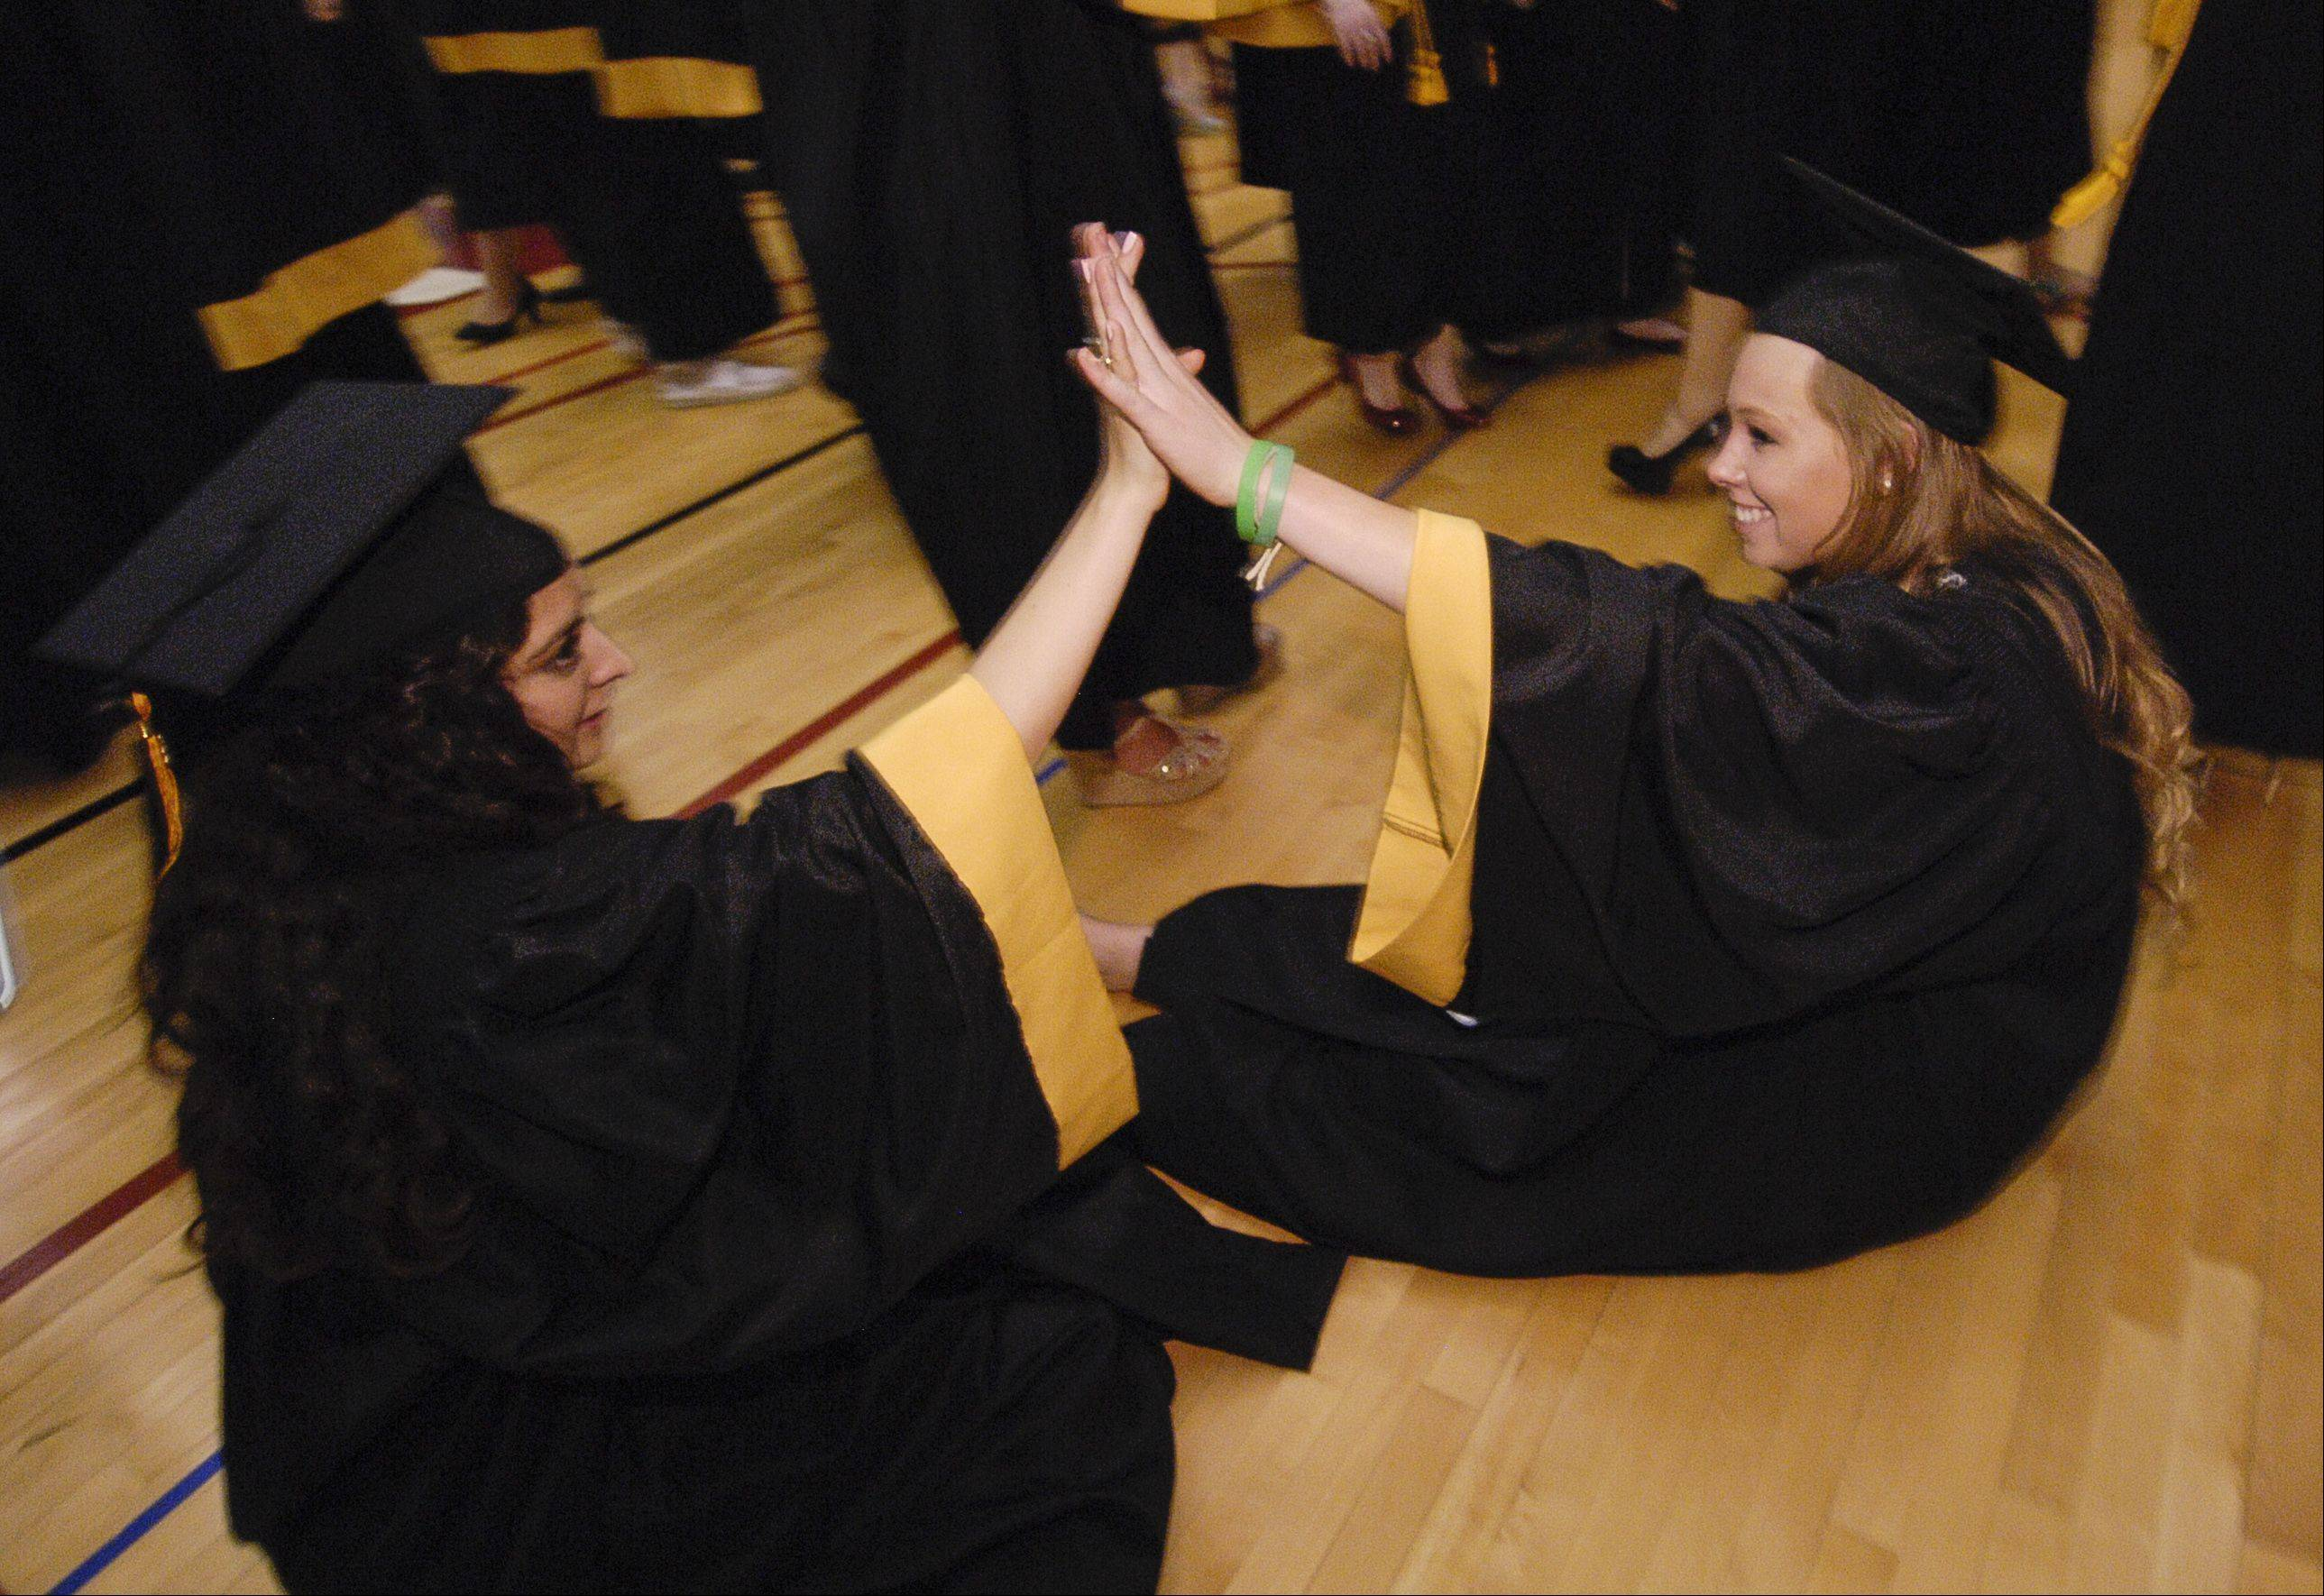 Carolyn O'Neill and Amy Nealon high-five each other before the Metea Valley High School graduation on Sunday, May 26 at the NIU Convocation Center in DeKalb.